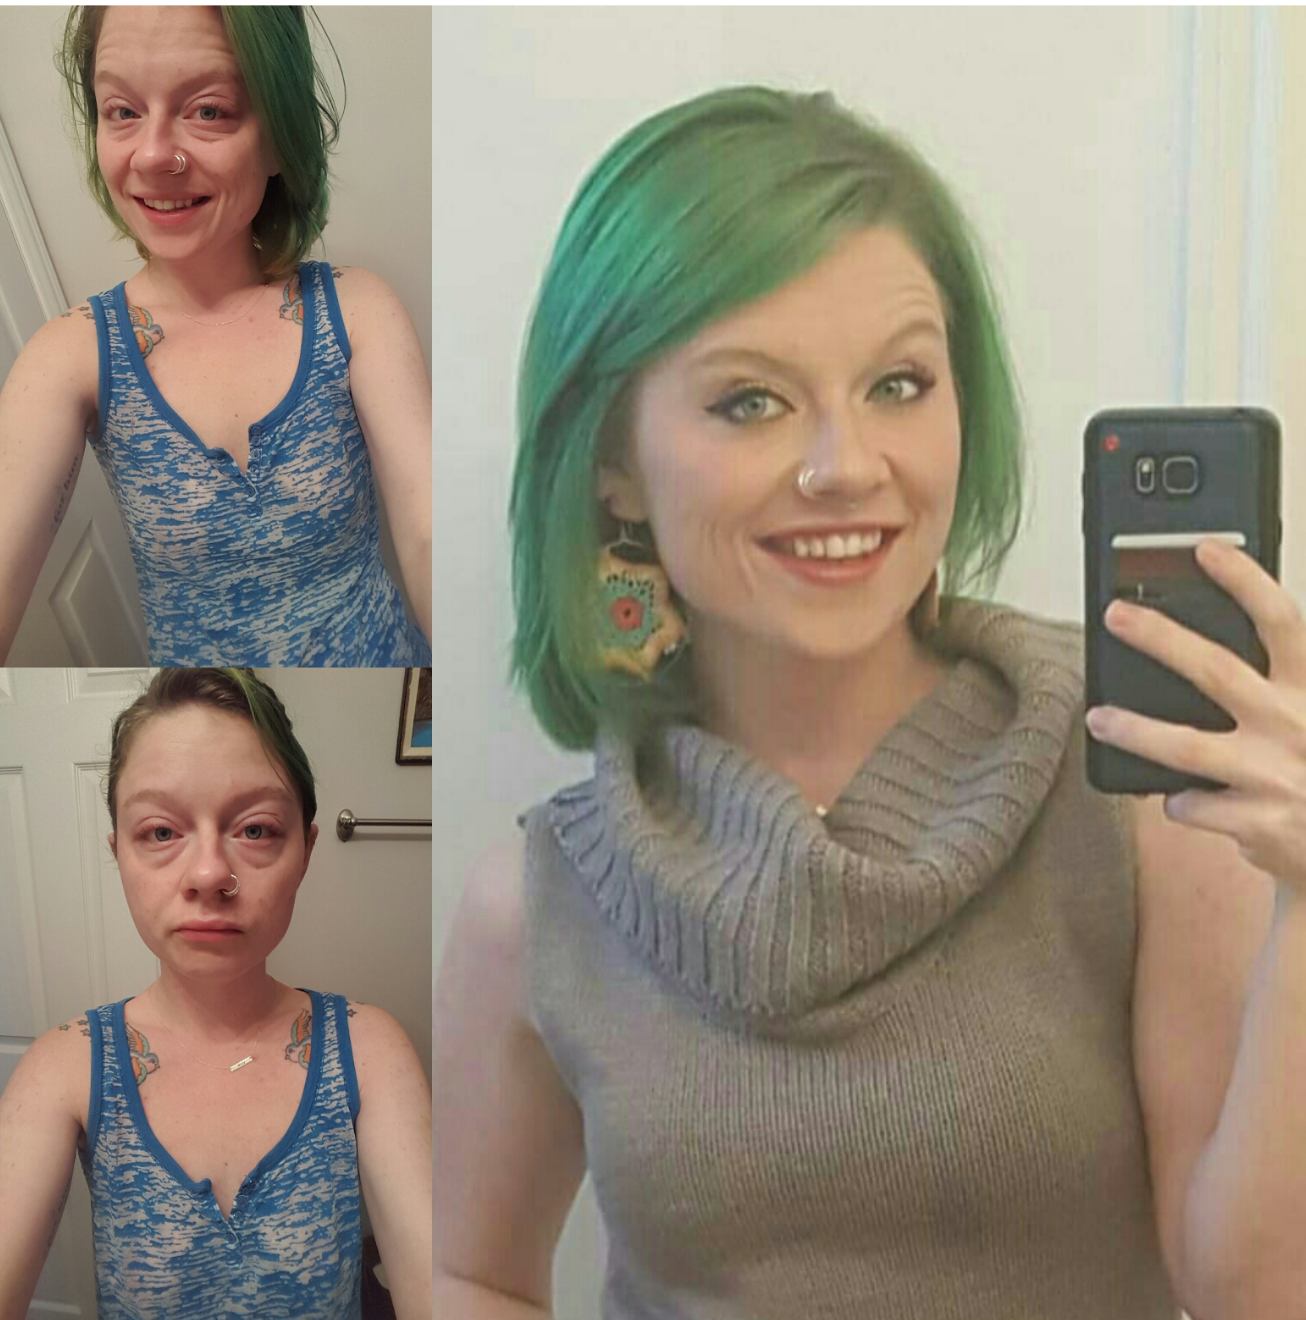 selfies of a woman with crohn's disease with and without makeup